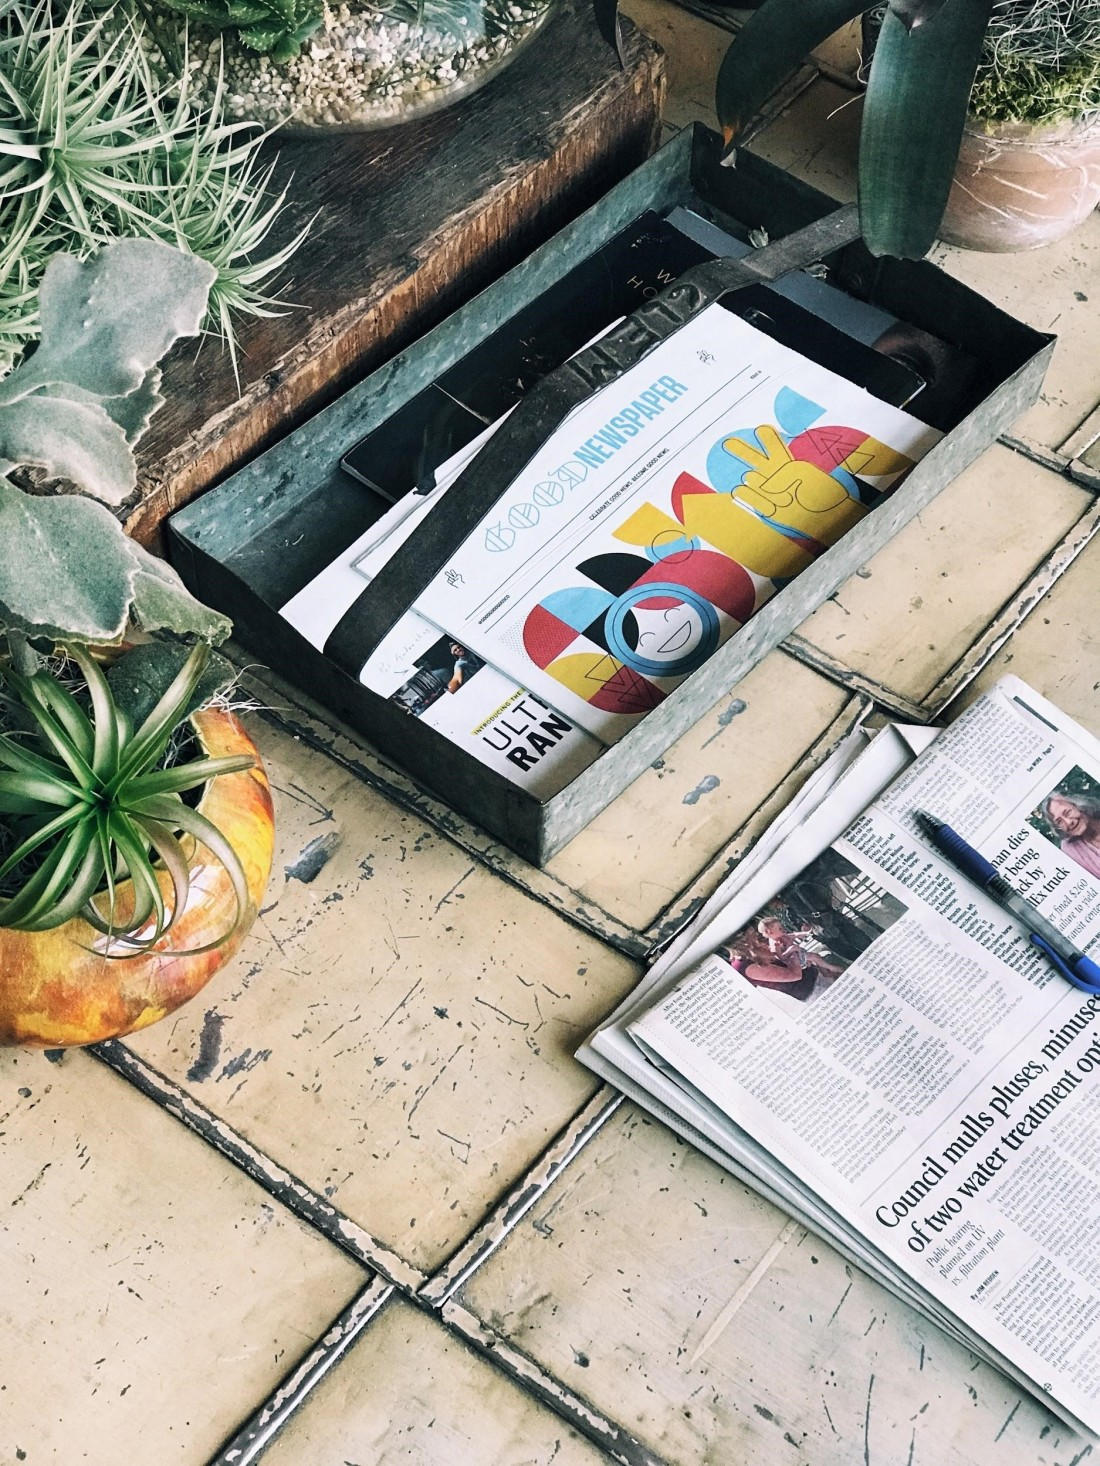 newspapers lying on patio floo with houseplants